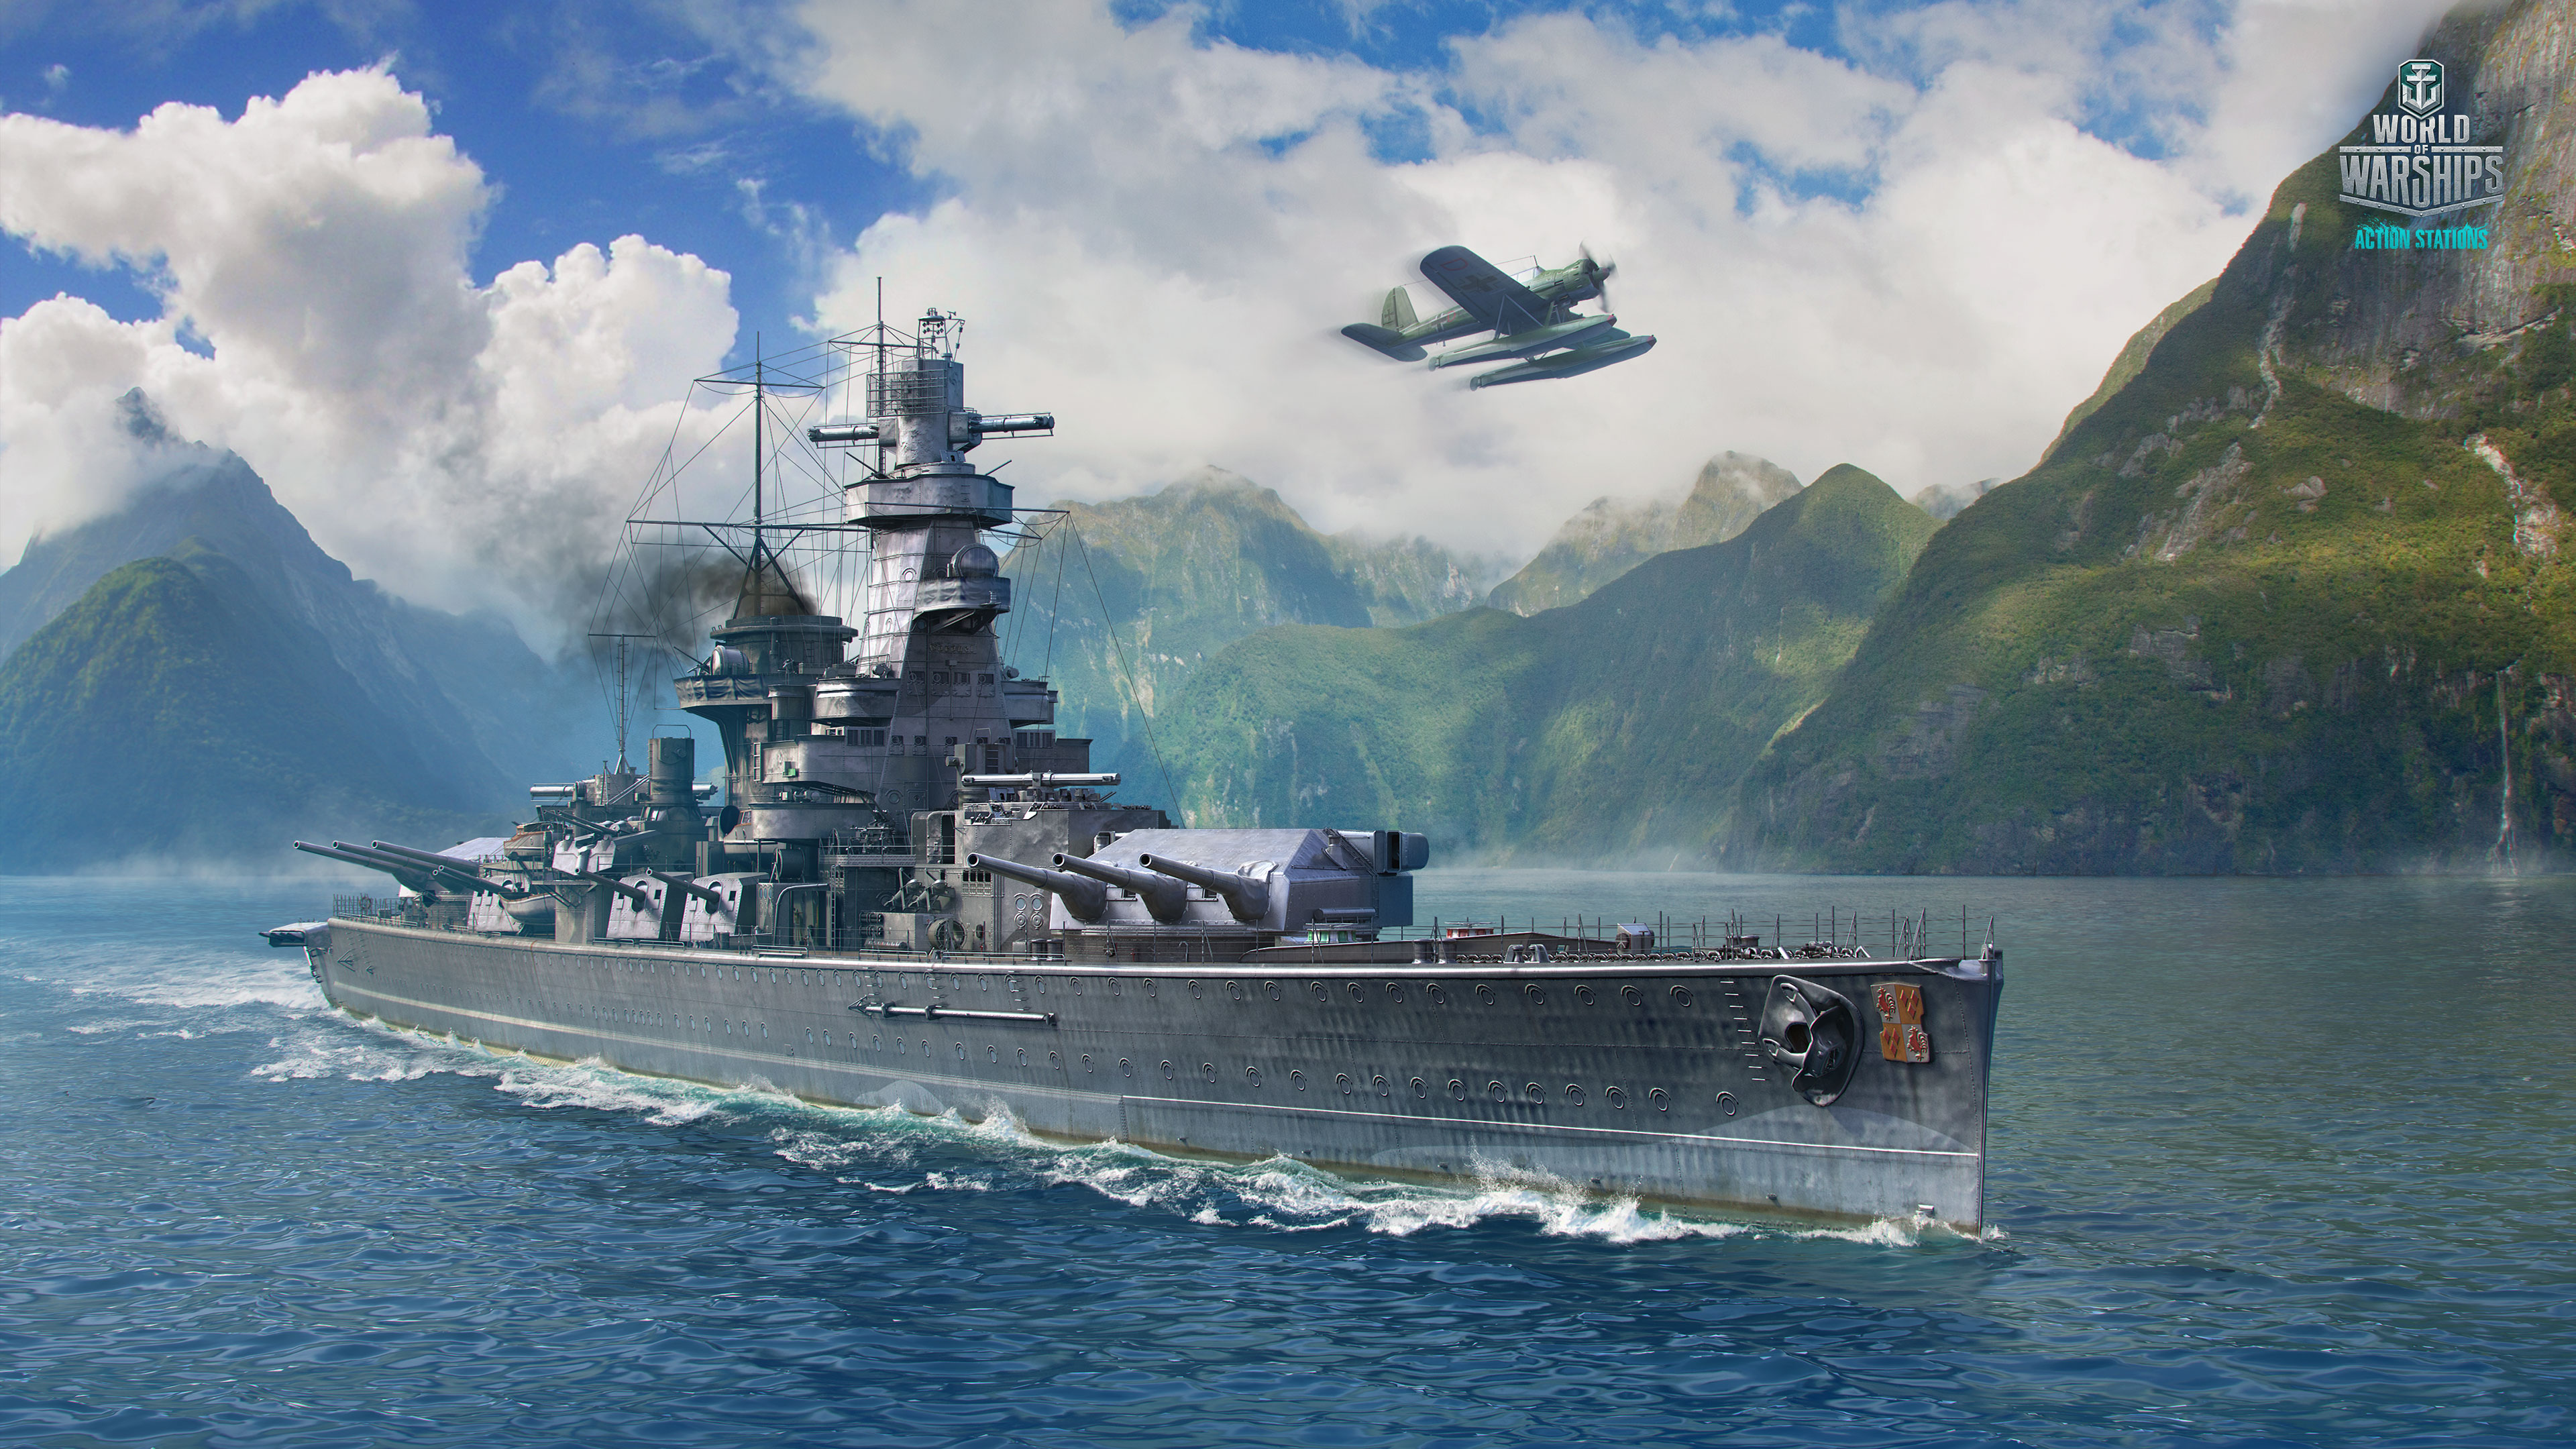 This Month A New German Cruiser Is The Focus Of Artwork